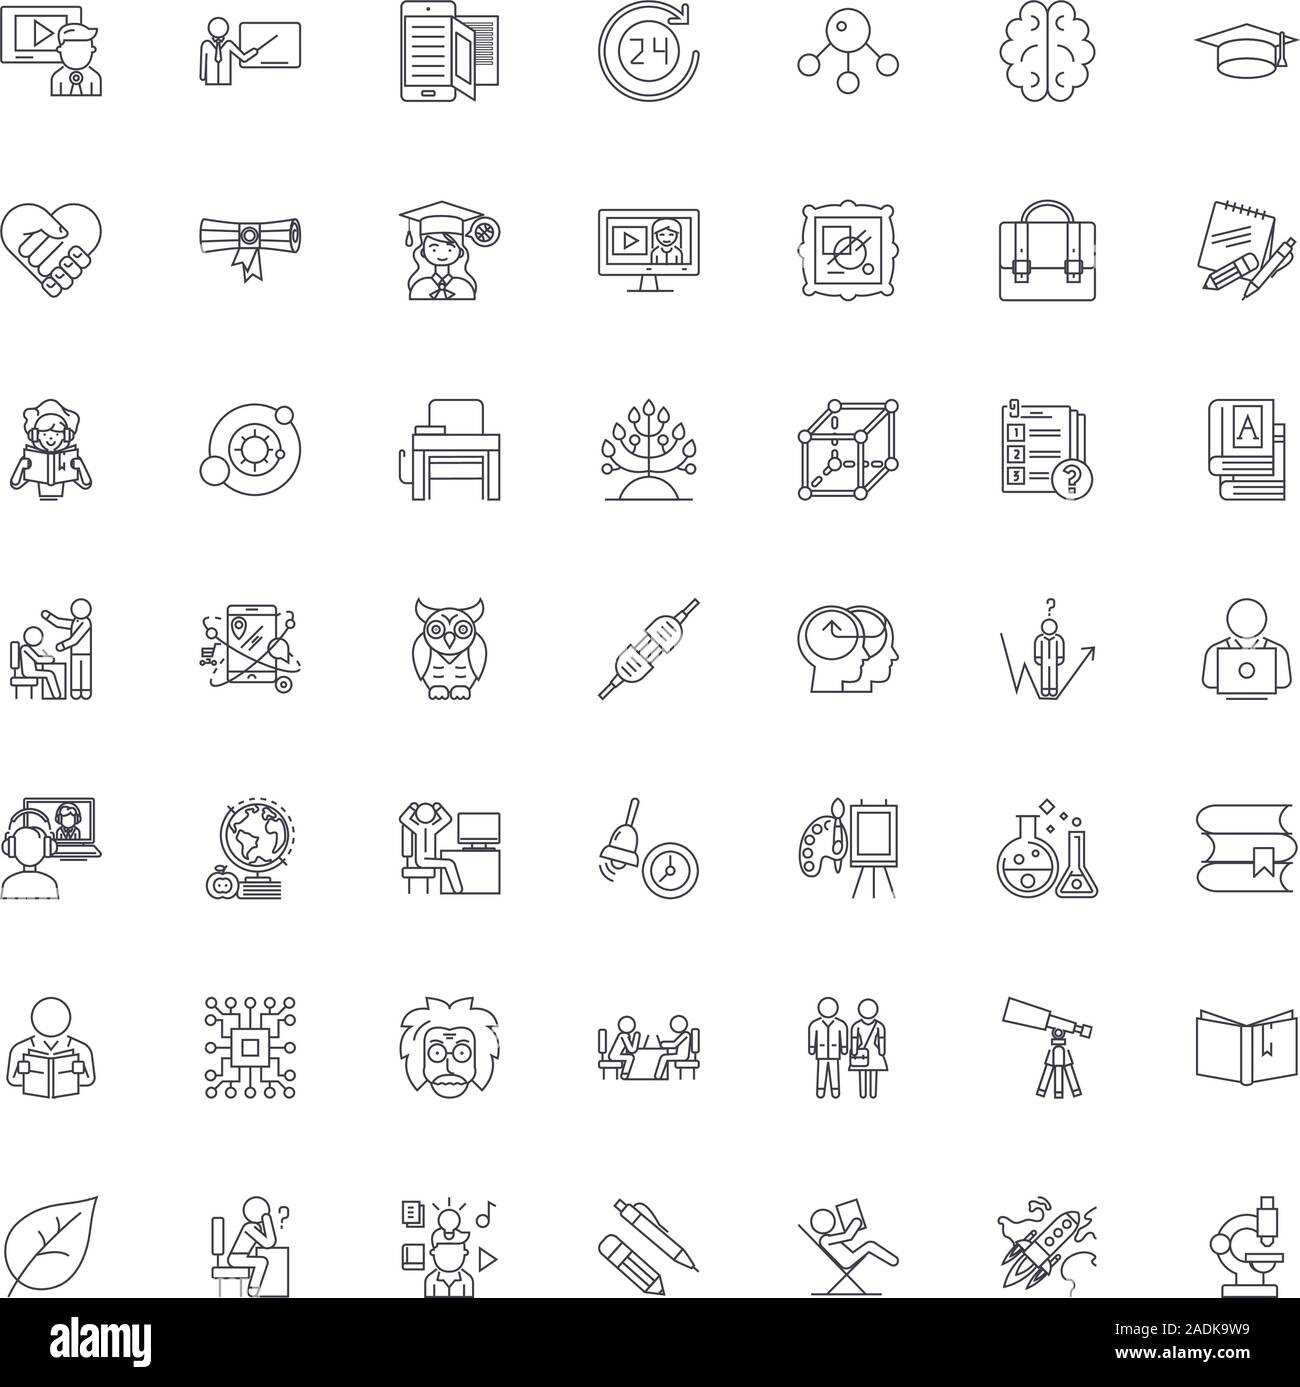 Education structure line icons, signs, symbols vector, linear illustration set Stock Vector